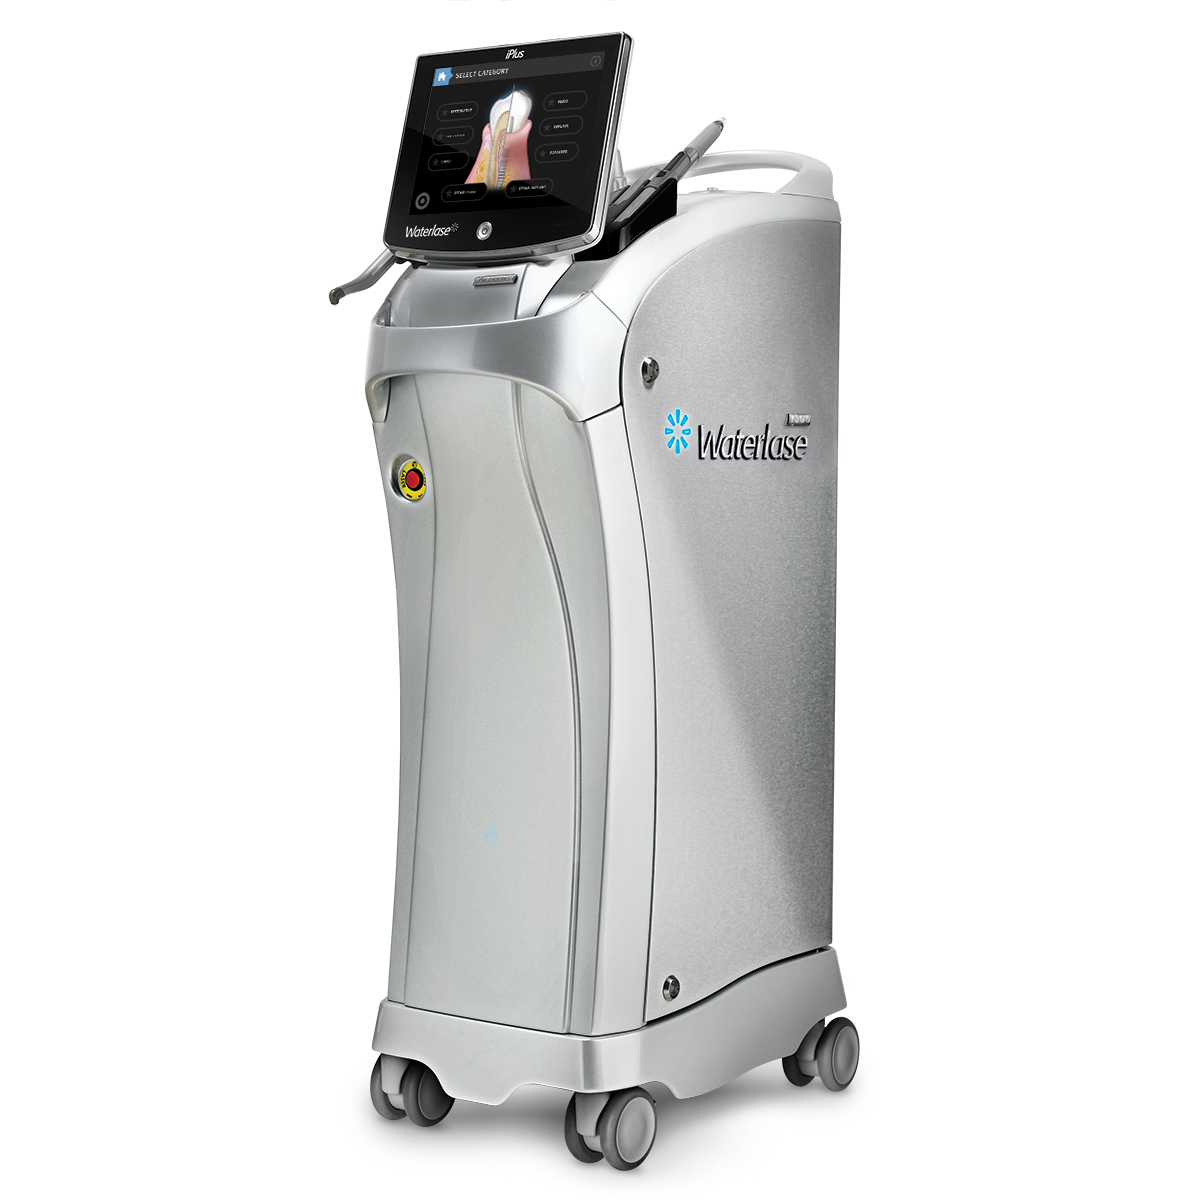 image of Waterlase dental laser